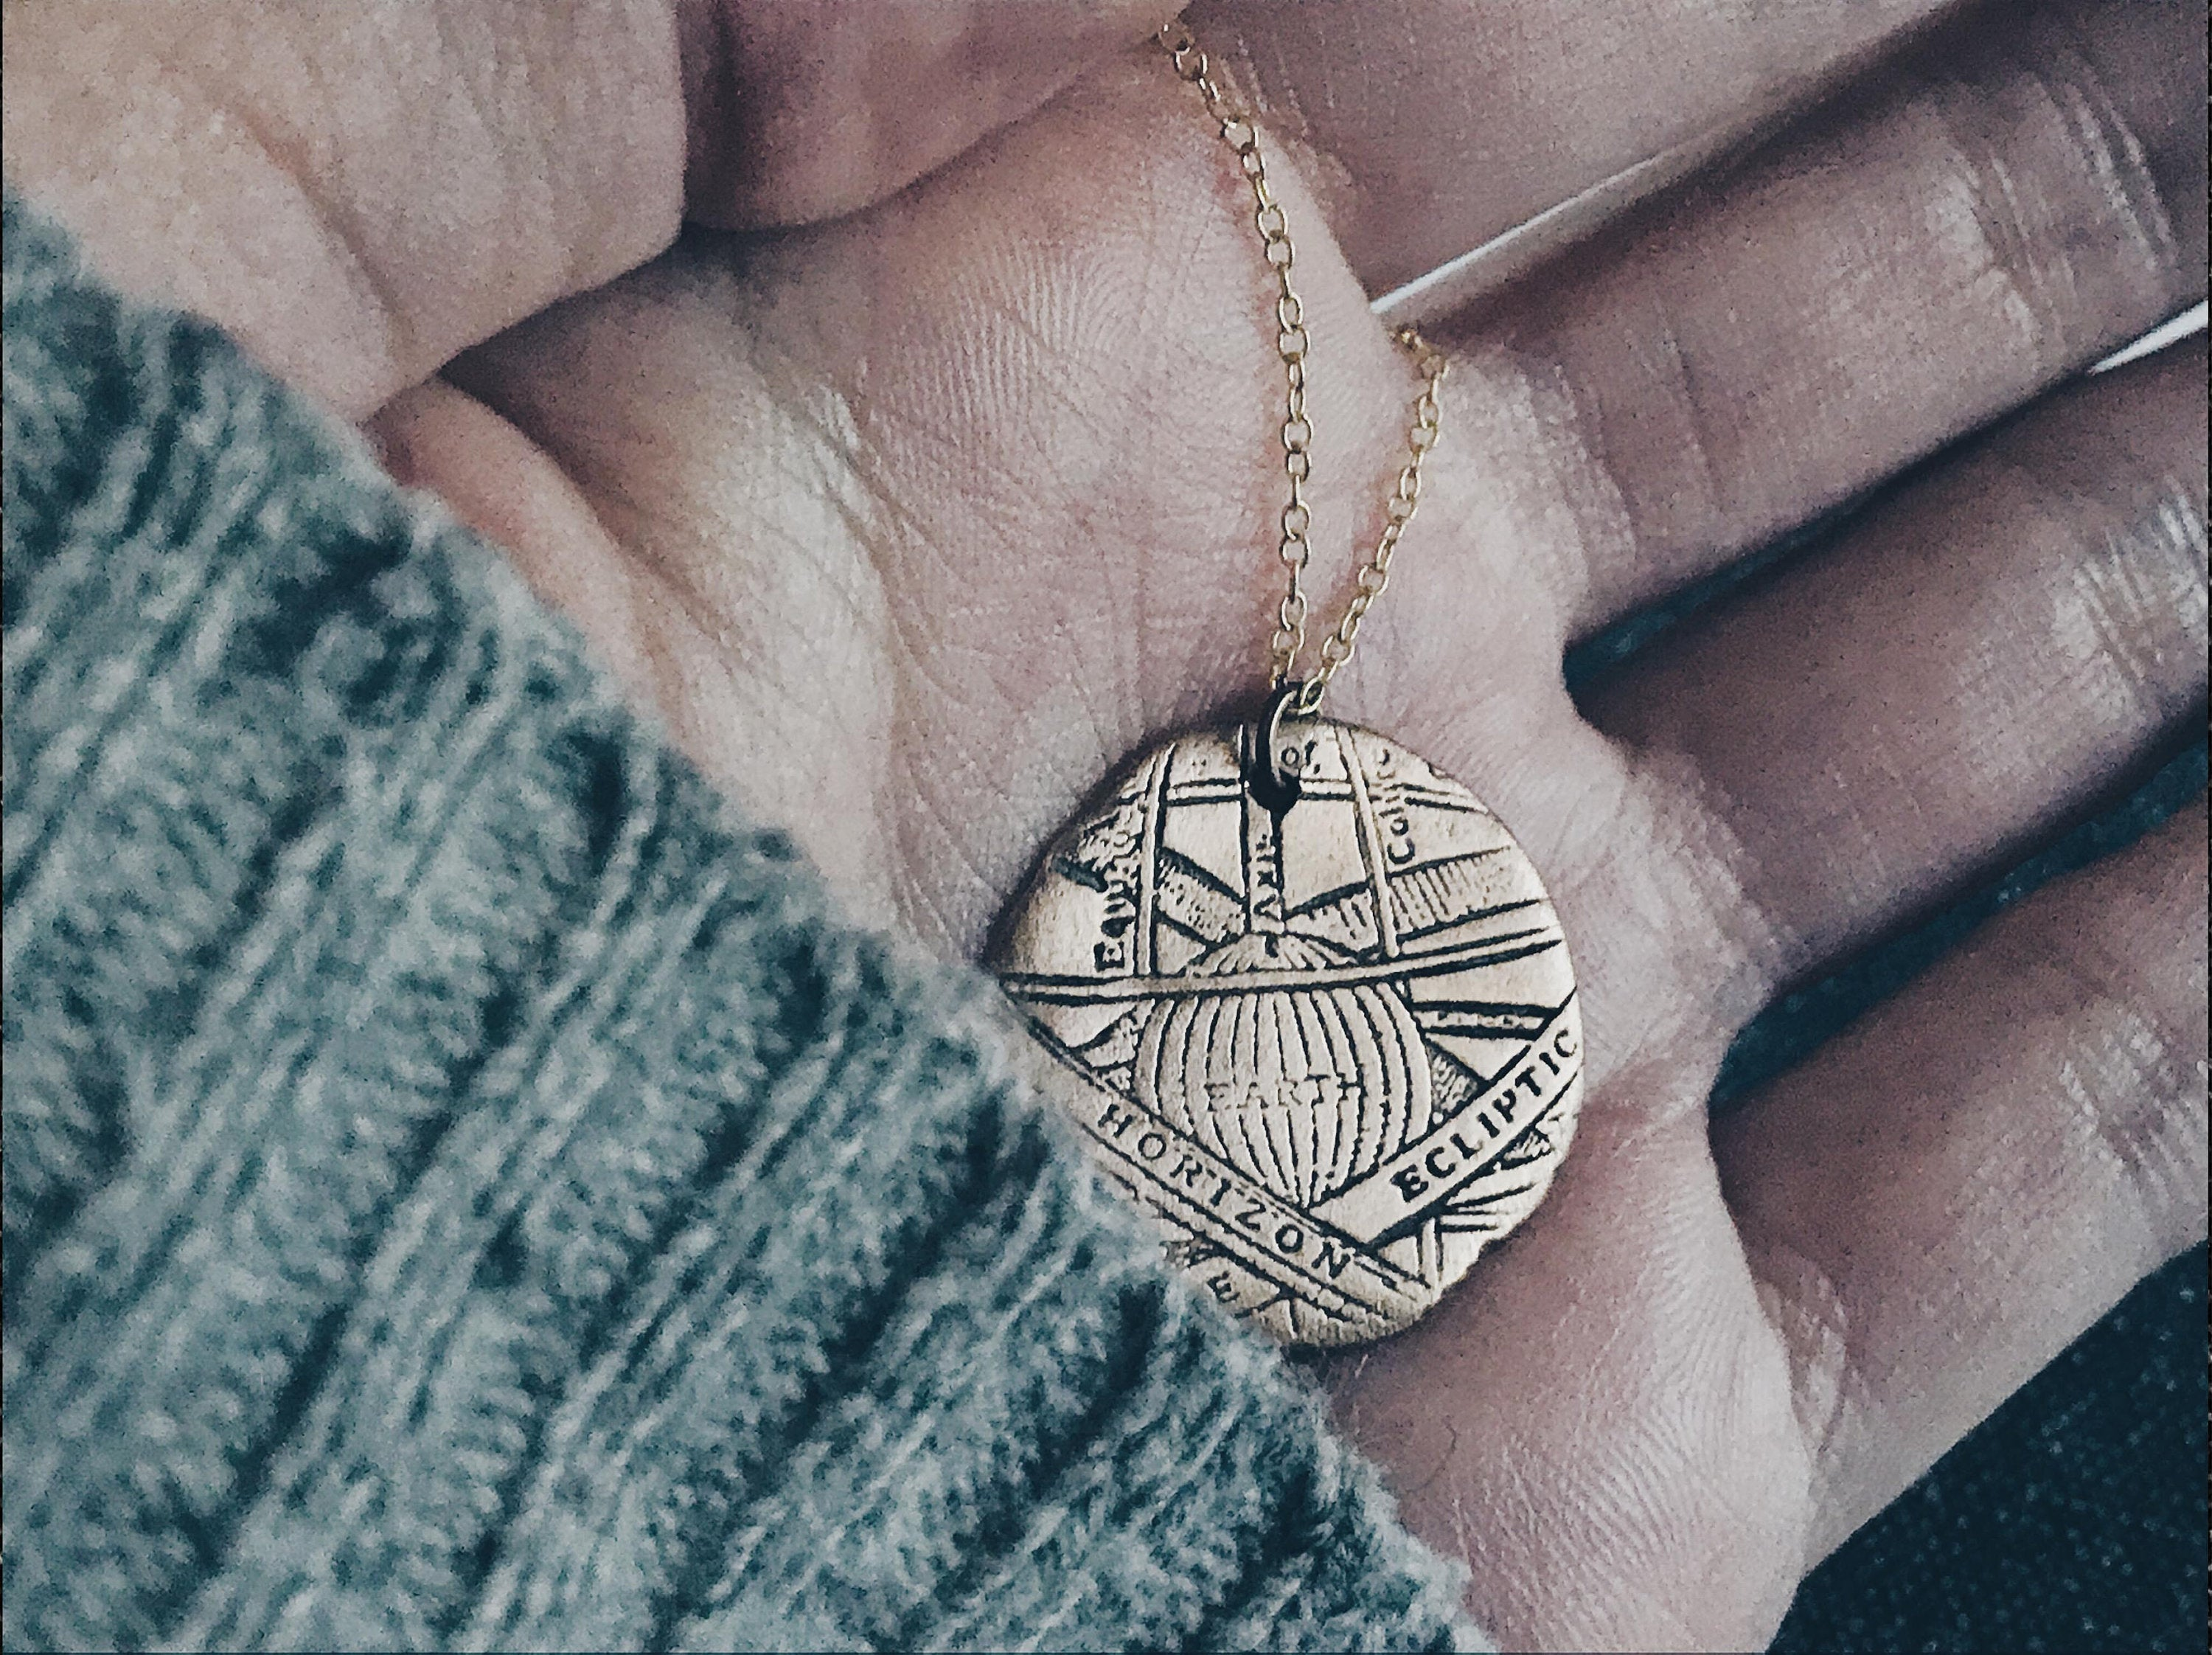 Astrolabe Medallion Pendant Necklace  - Bronze Astronomy Necklace - Men's / Women's Celestial Jewelry